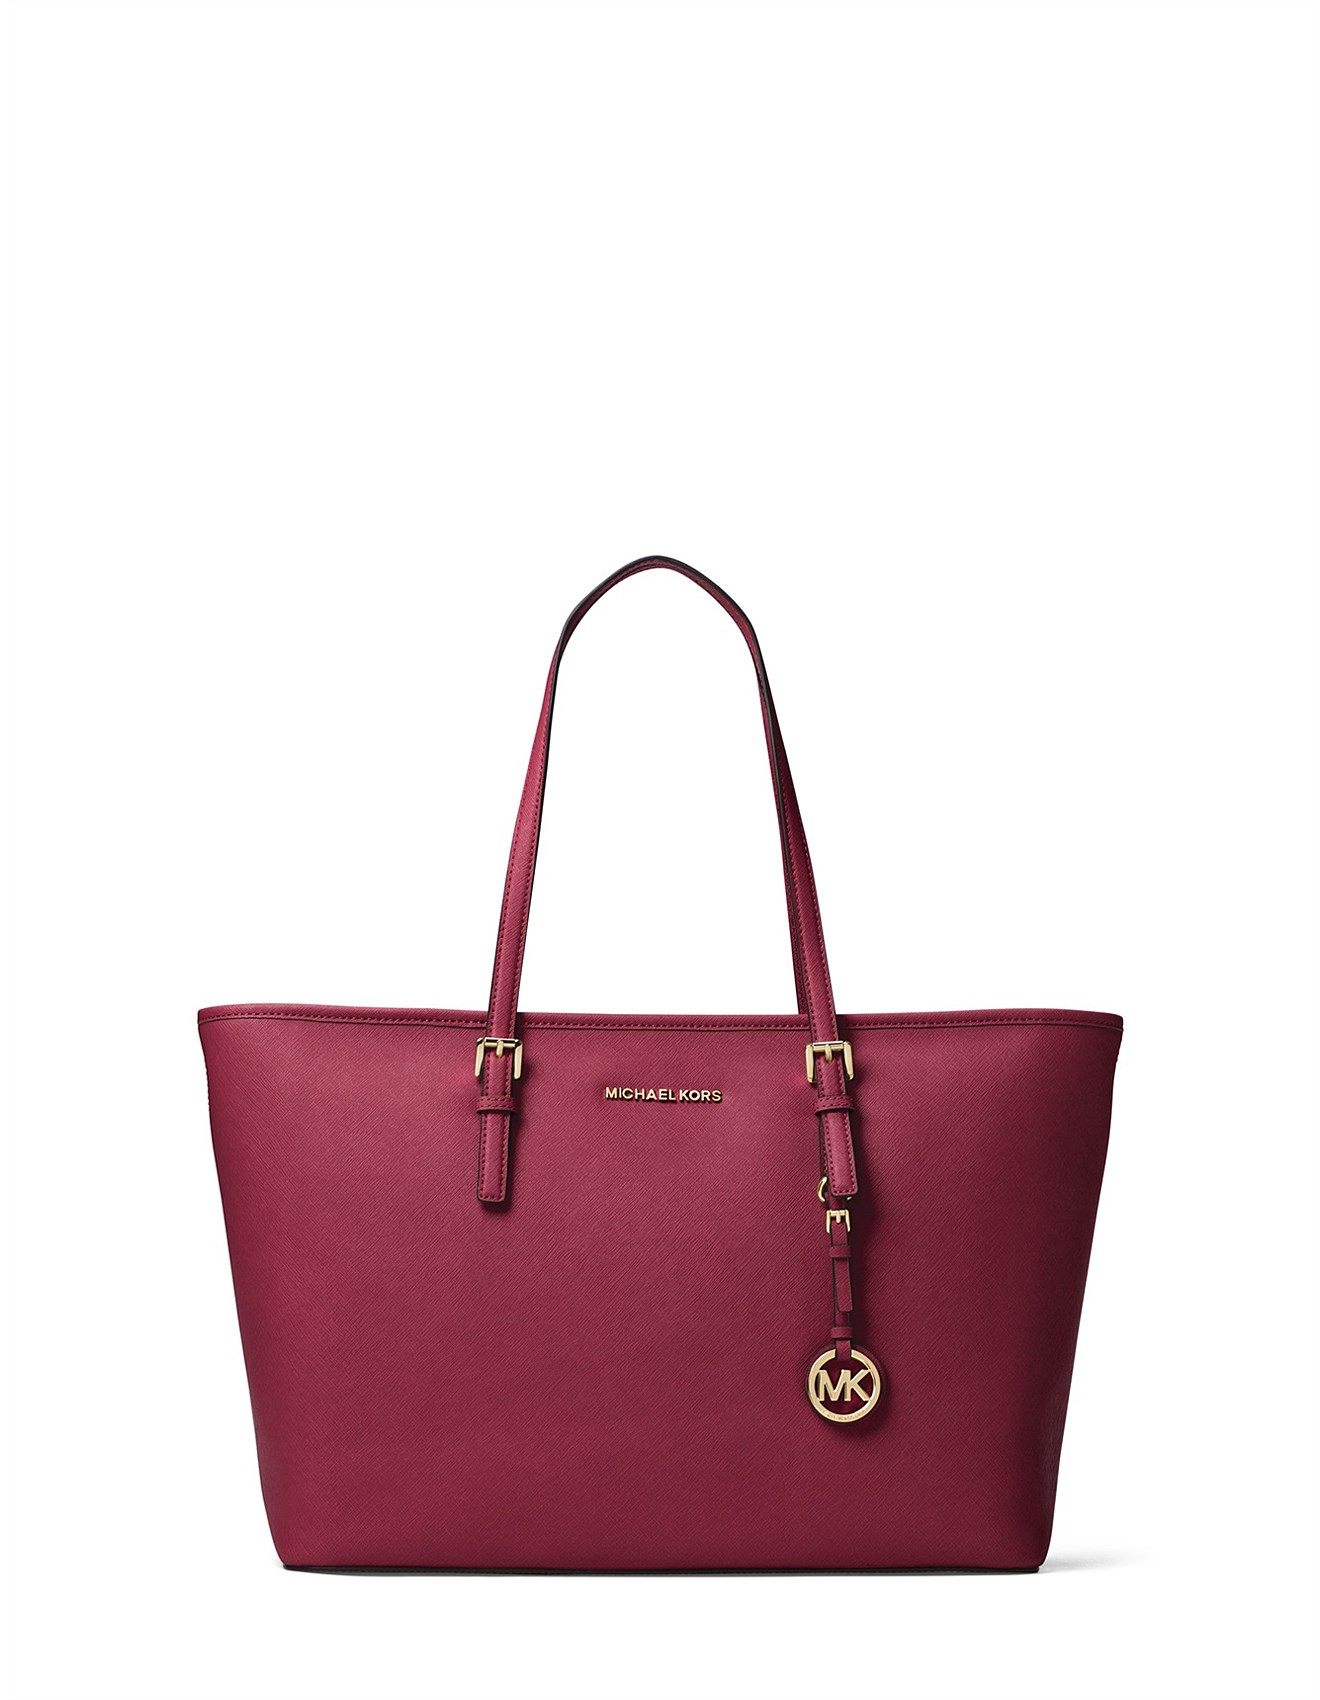 225dd0afb84f Jet Set Travel Medium Saffiano Top-Zip Tote